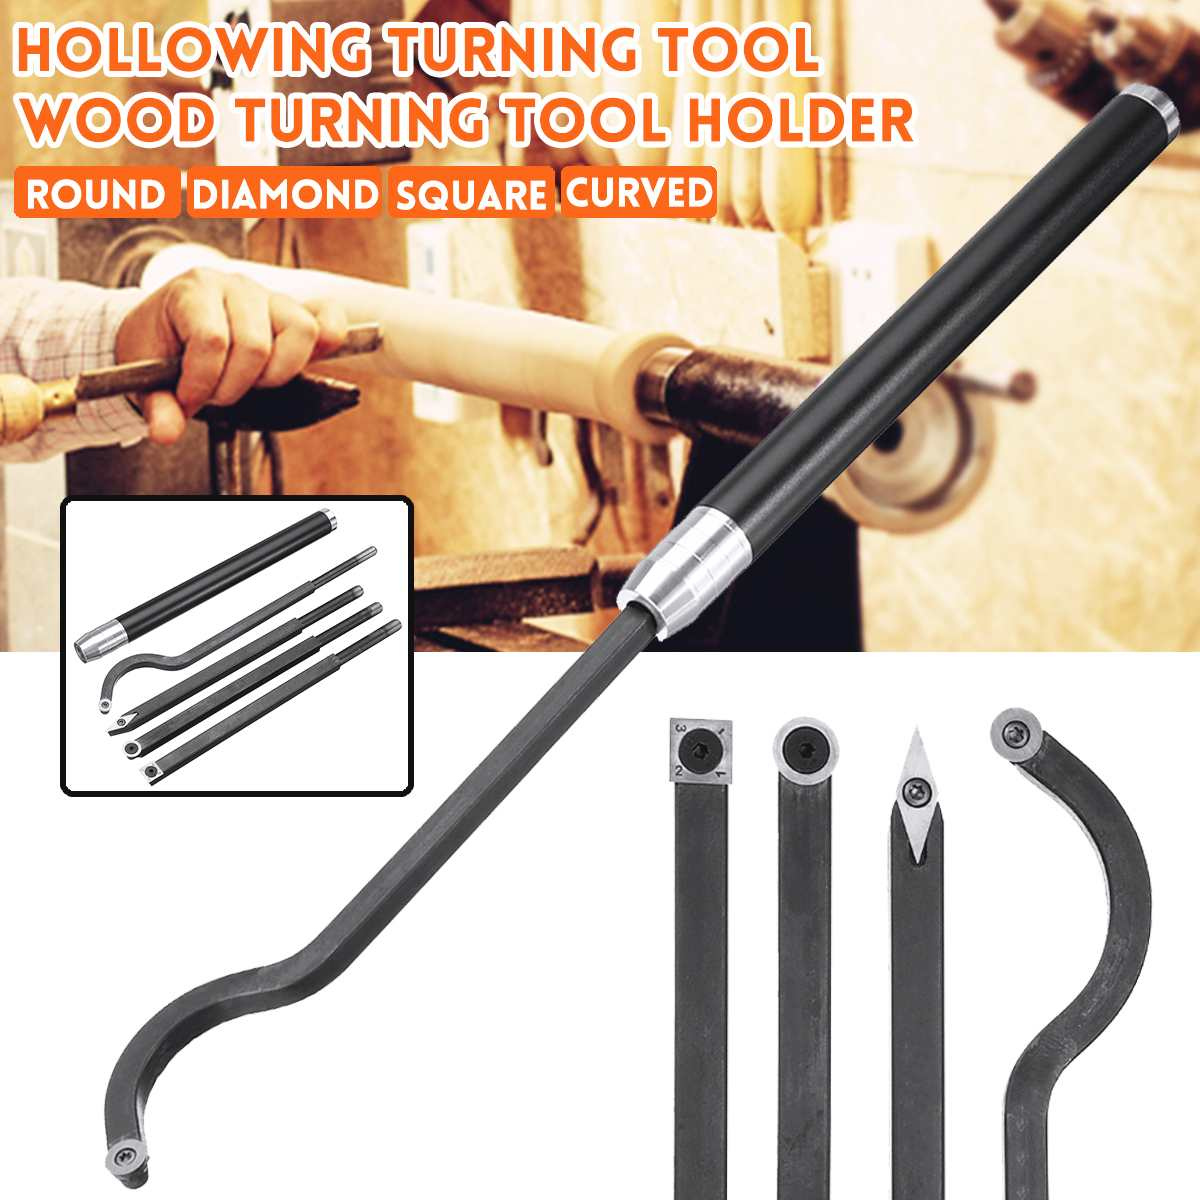 Hollowing Wood Turning Tool Holder Rotary Chisel Round/Diamond/Square/Curved Woodworking turning tool Lathe New ArrivalHollowing Wood Turning Tool Holder Rotary Chisel Round/Diamond/Square/Curved Woodworking turning tool Lathe New Arrival